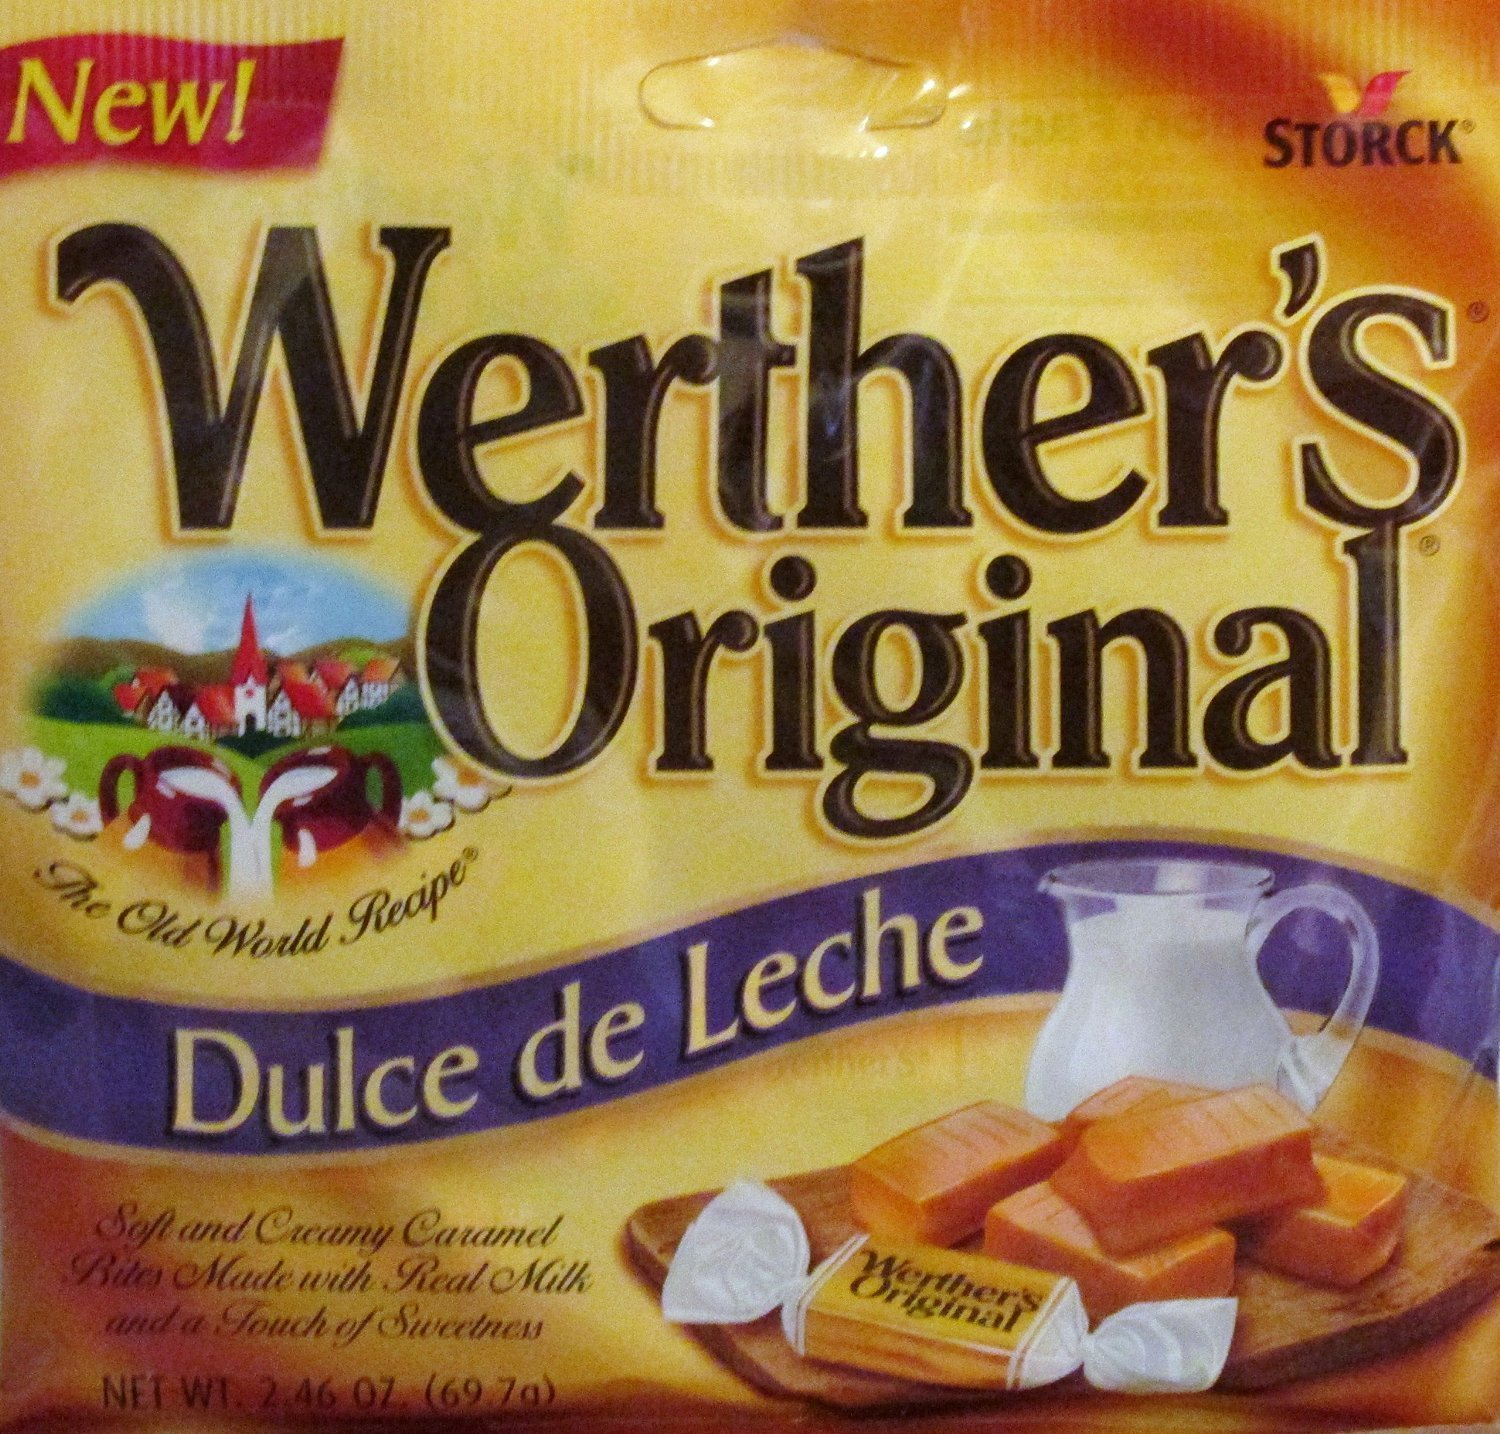 Amazon.com : Werthers Original Dulce de Leche Soft and Creamy Caramels 2.46 oz (Pack of 3) : Grocery & Gourmet Food